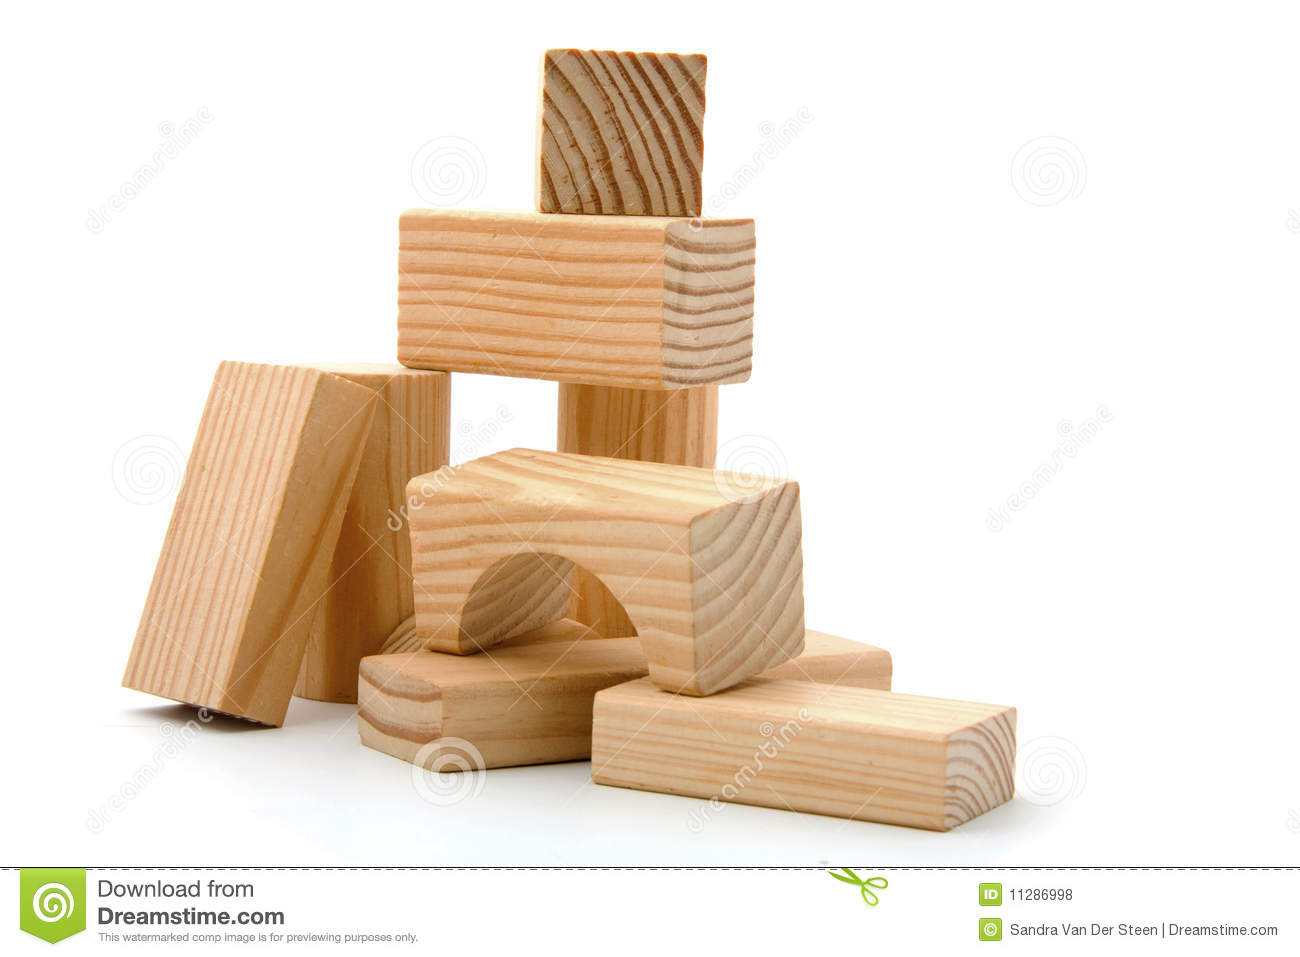 Wooden block clipart png royalty free library Wooden Building Blocks Royalty Free Stock Photos - Image: 11286998 png royalty free library